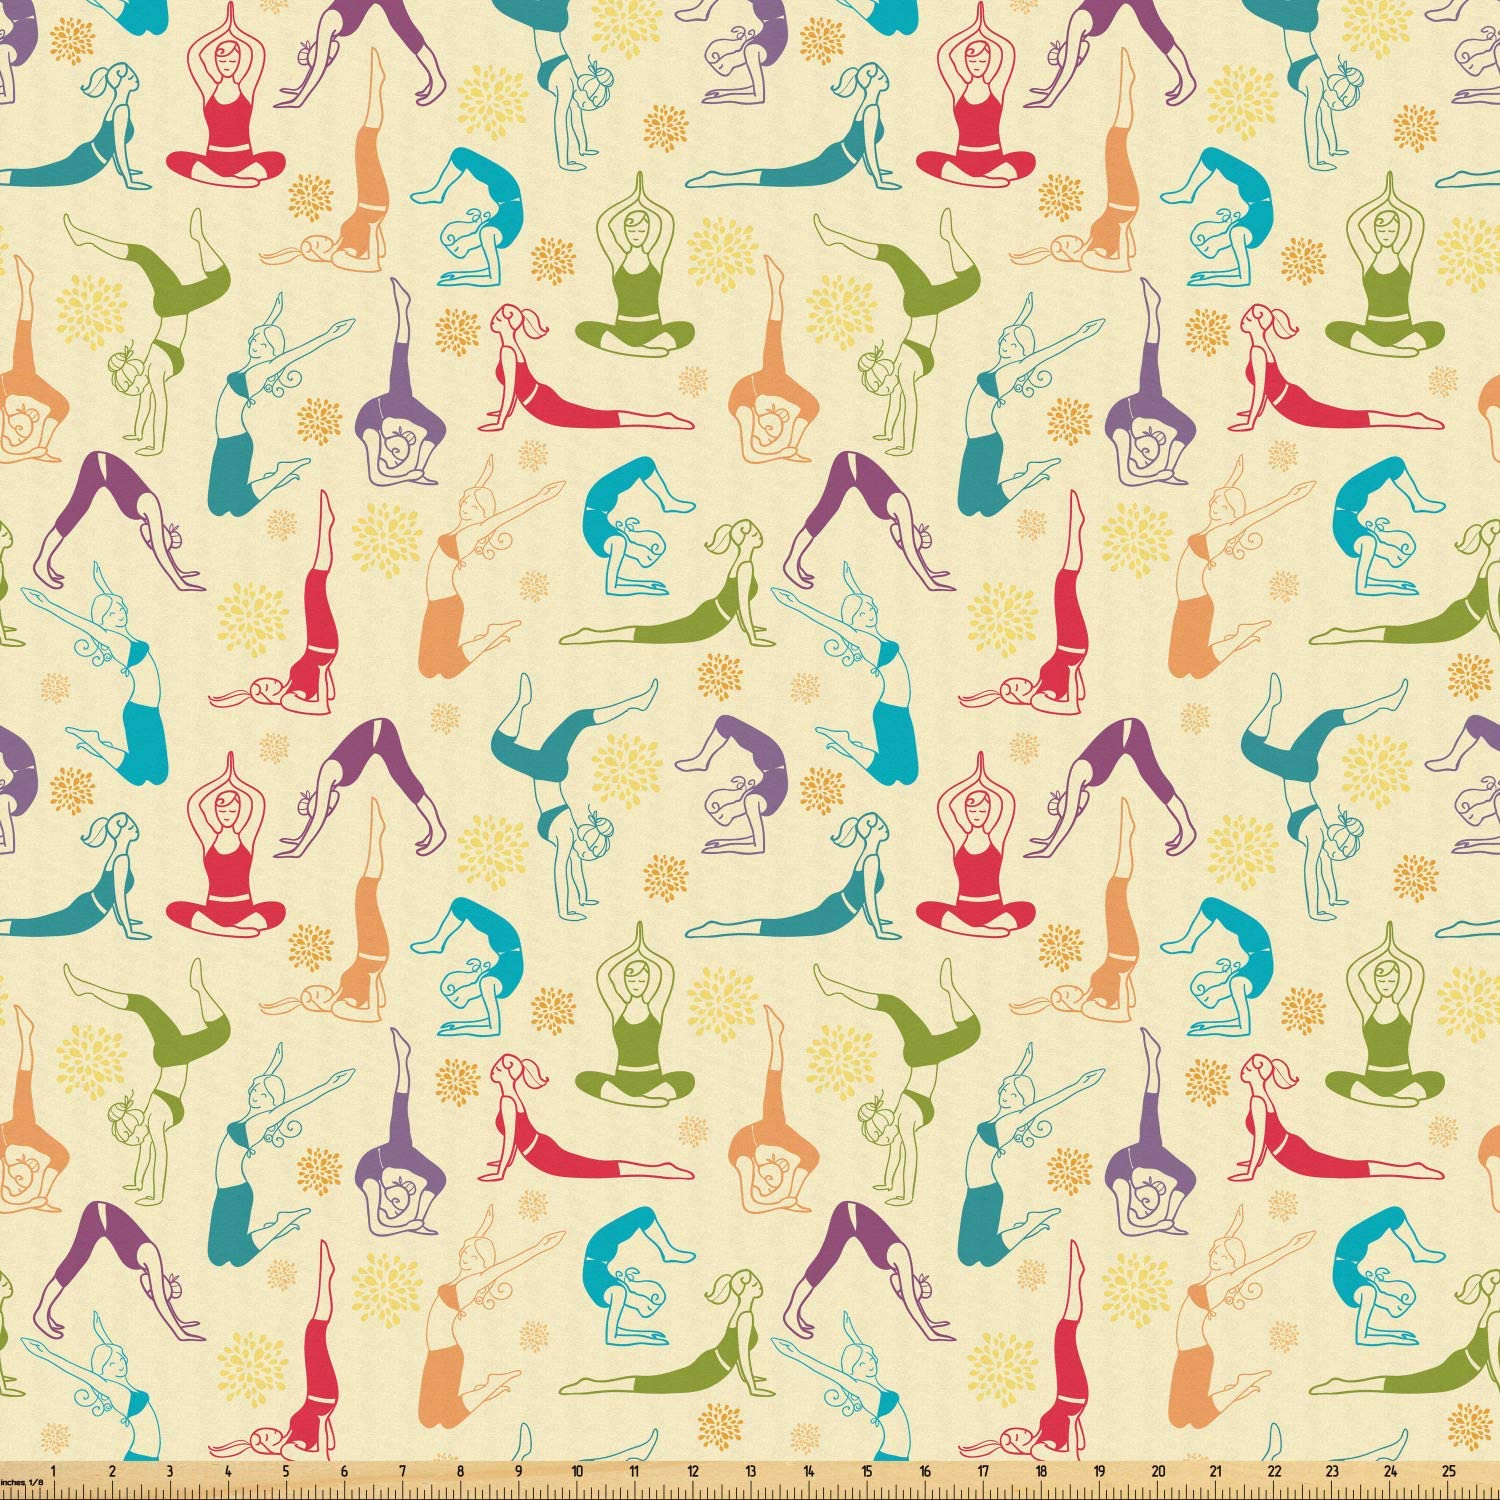 Ambesonne Yoga Fabric by The Yard, Workout Themed Fitness Girls Pattern Abstract Meditation Postures Arrangement Asian, Microfiber Fabric for Arts and Crafts Textiles & Decor, 5 Yards, Multicolor